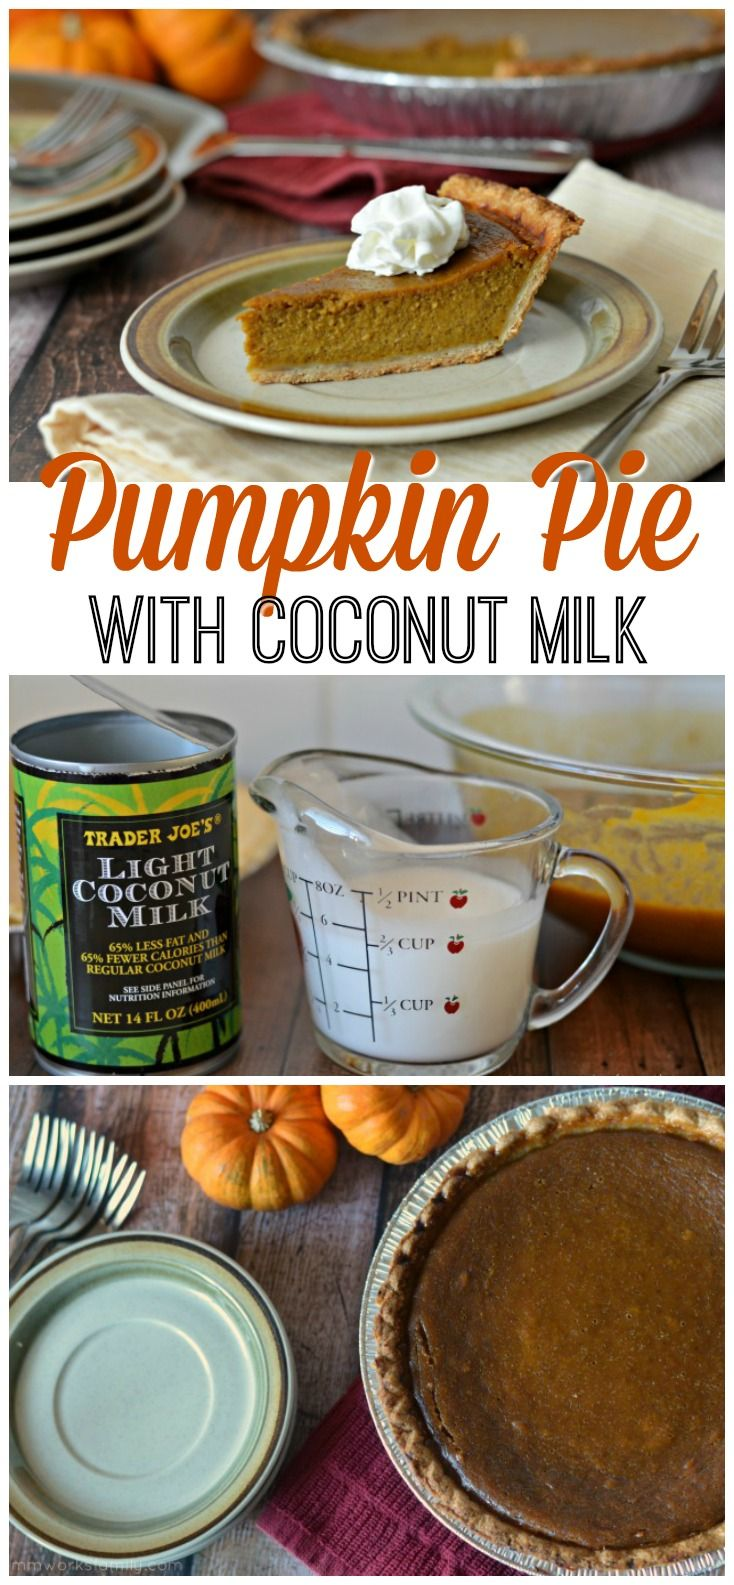 Looking for a dairy-free pumpkin pie filling? This pumpkin pie with coconut milk is perfect for those who are dairy-free or who just don't have condensed milk in the pantry!